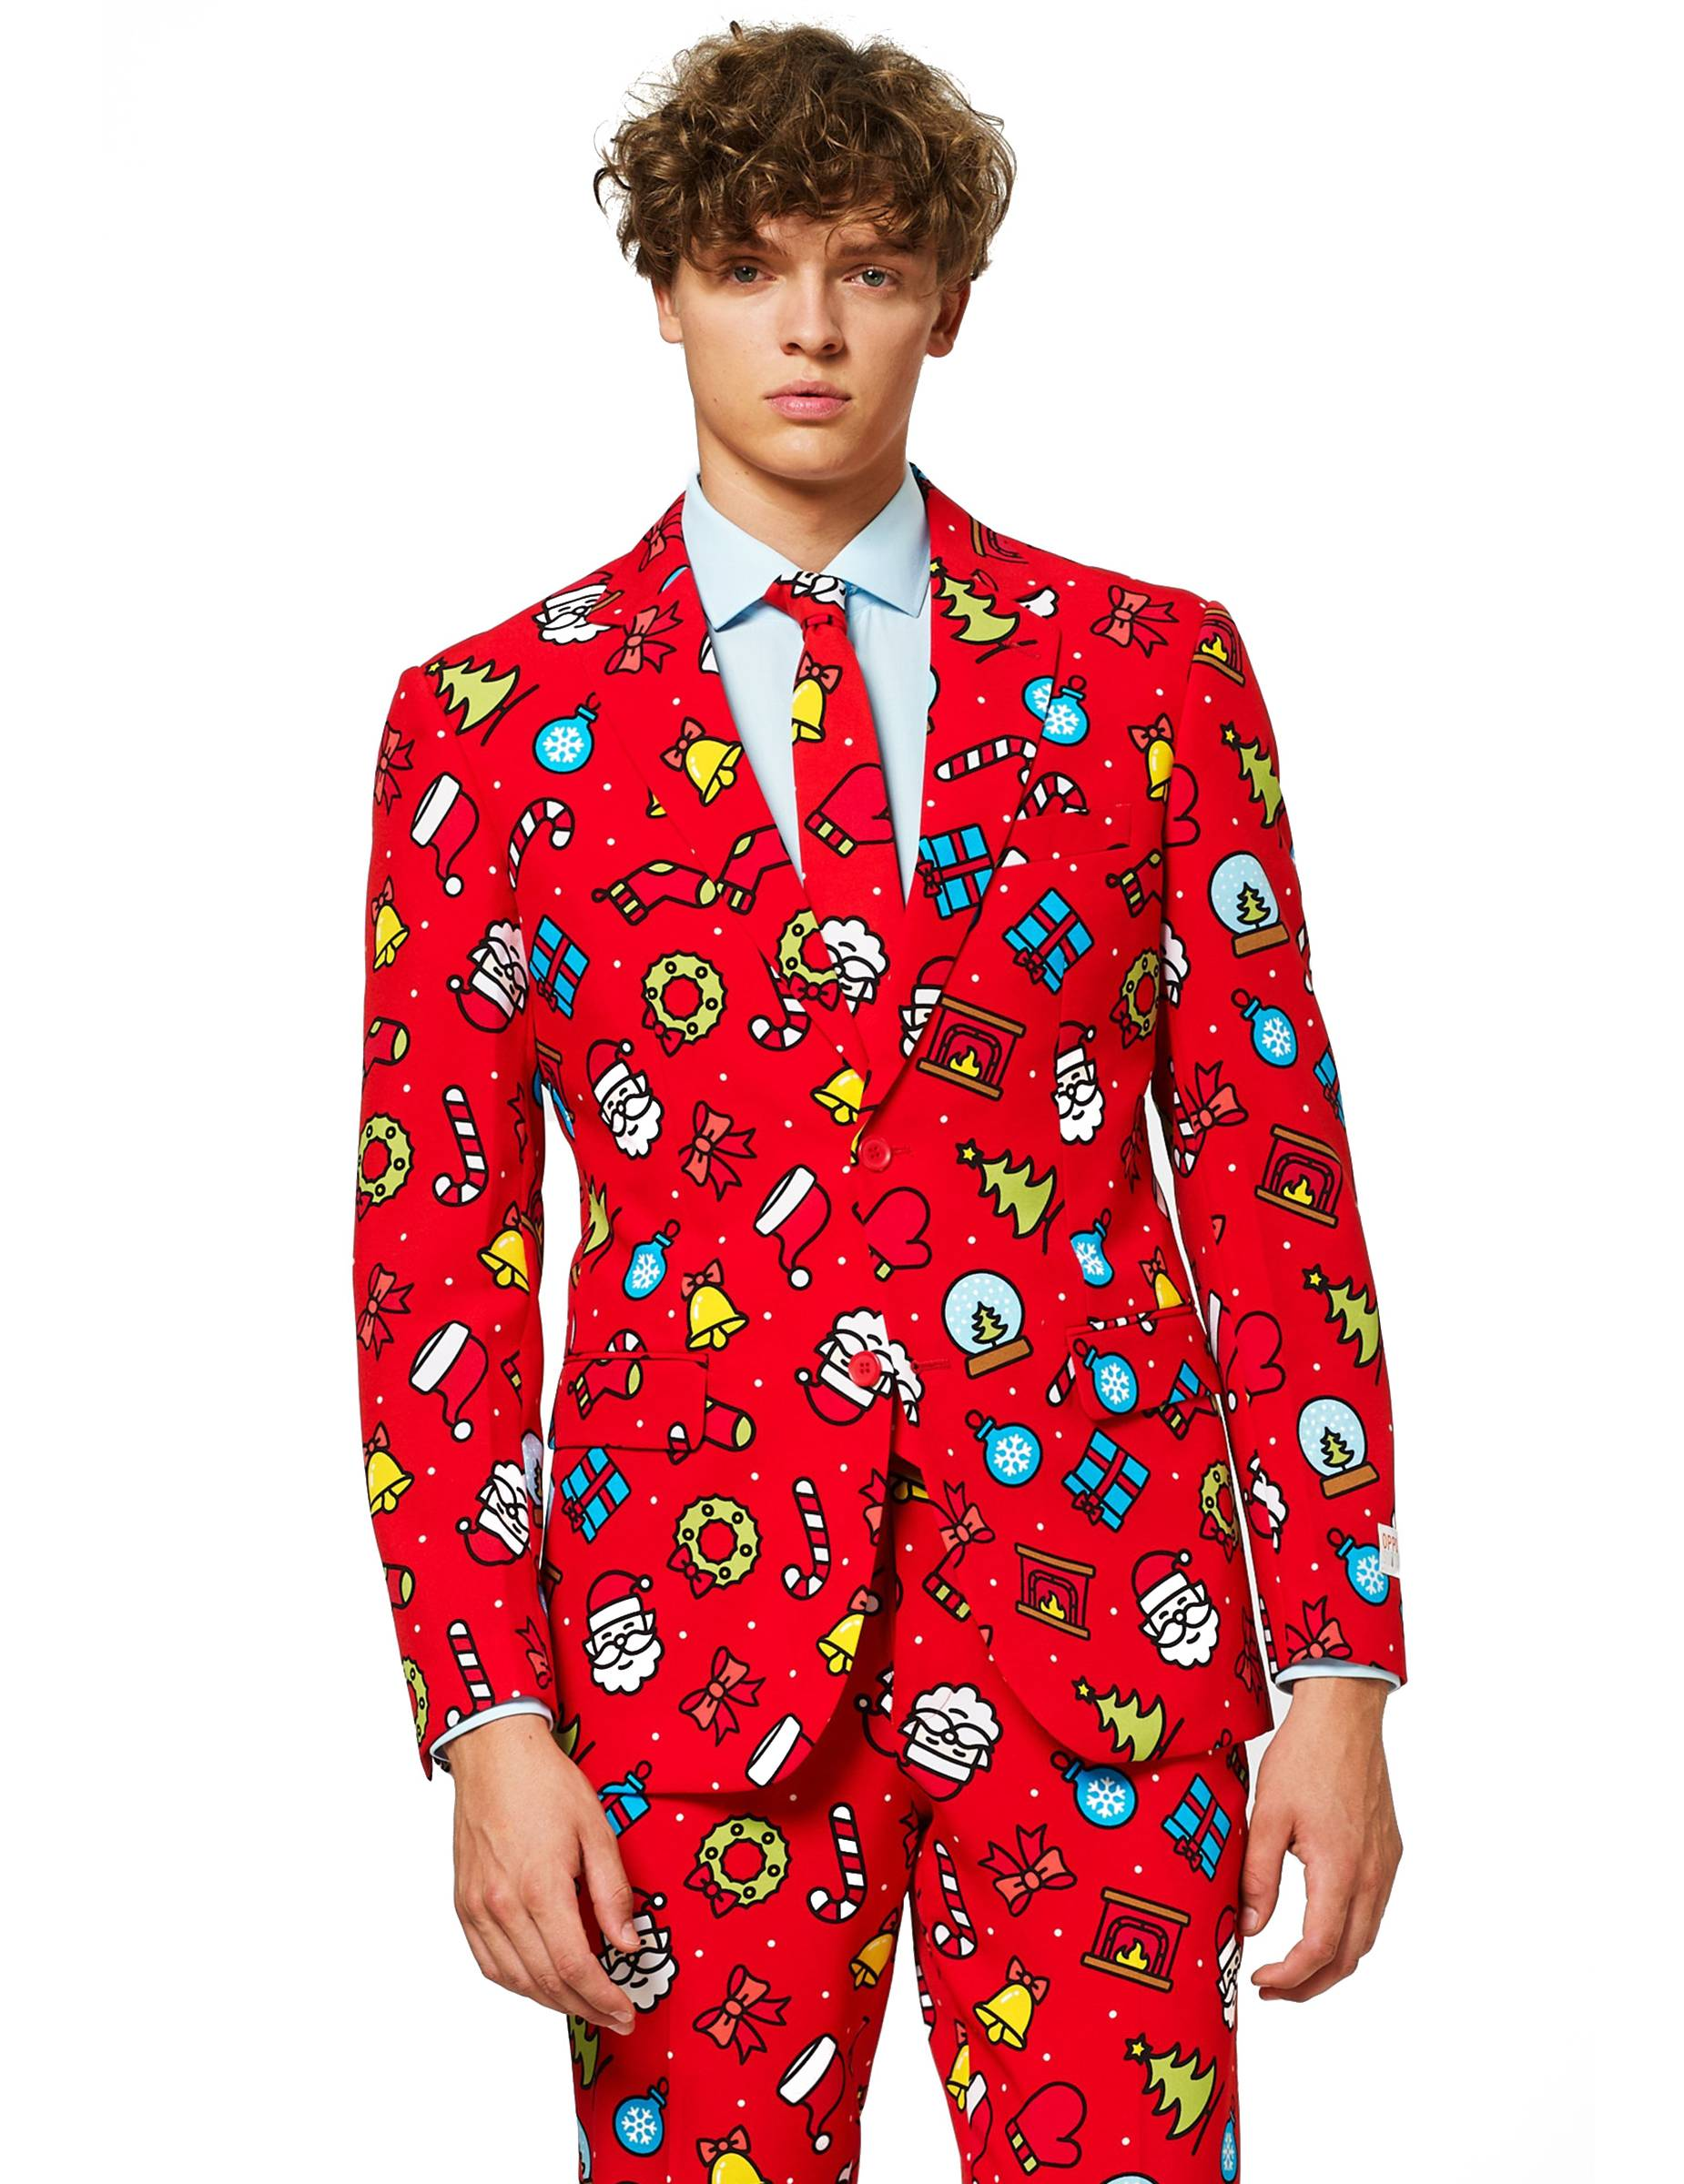 Deguisetoi Costume Mr. Dapper decorator homme Opposuits - Taille: L (EU 54)